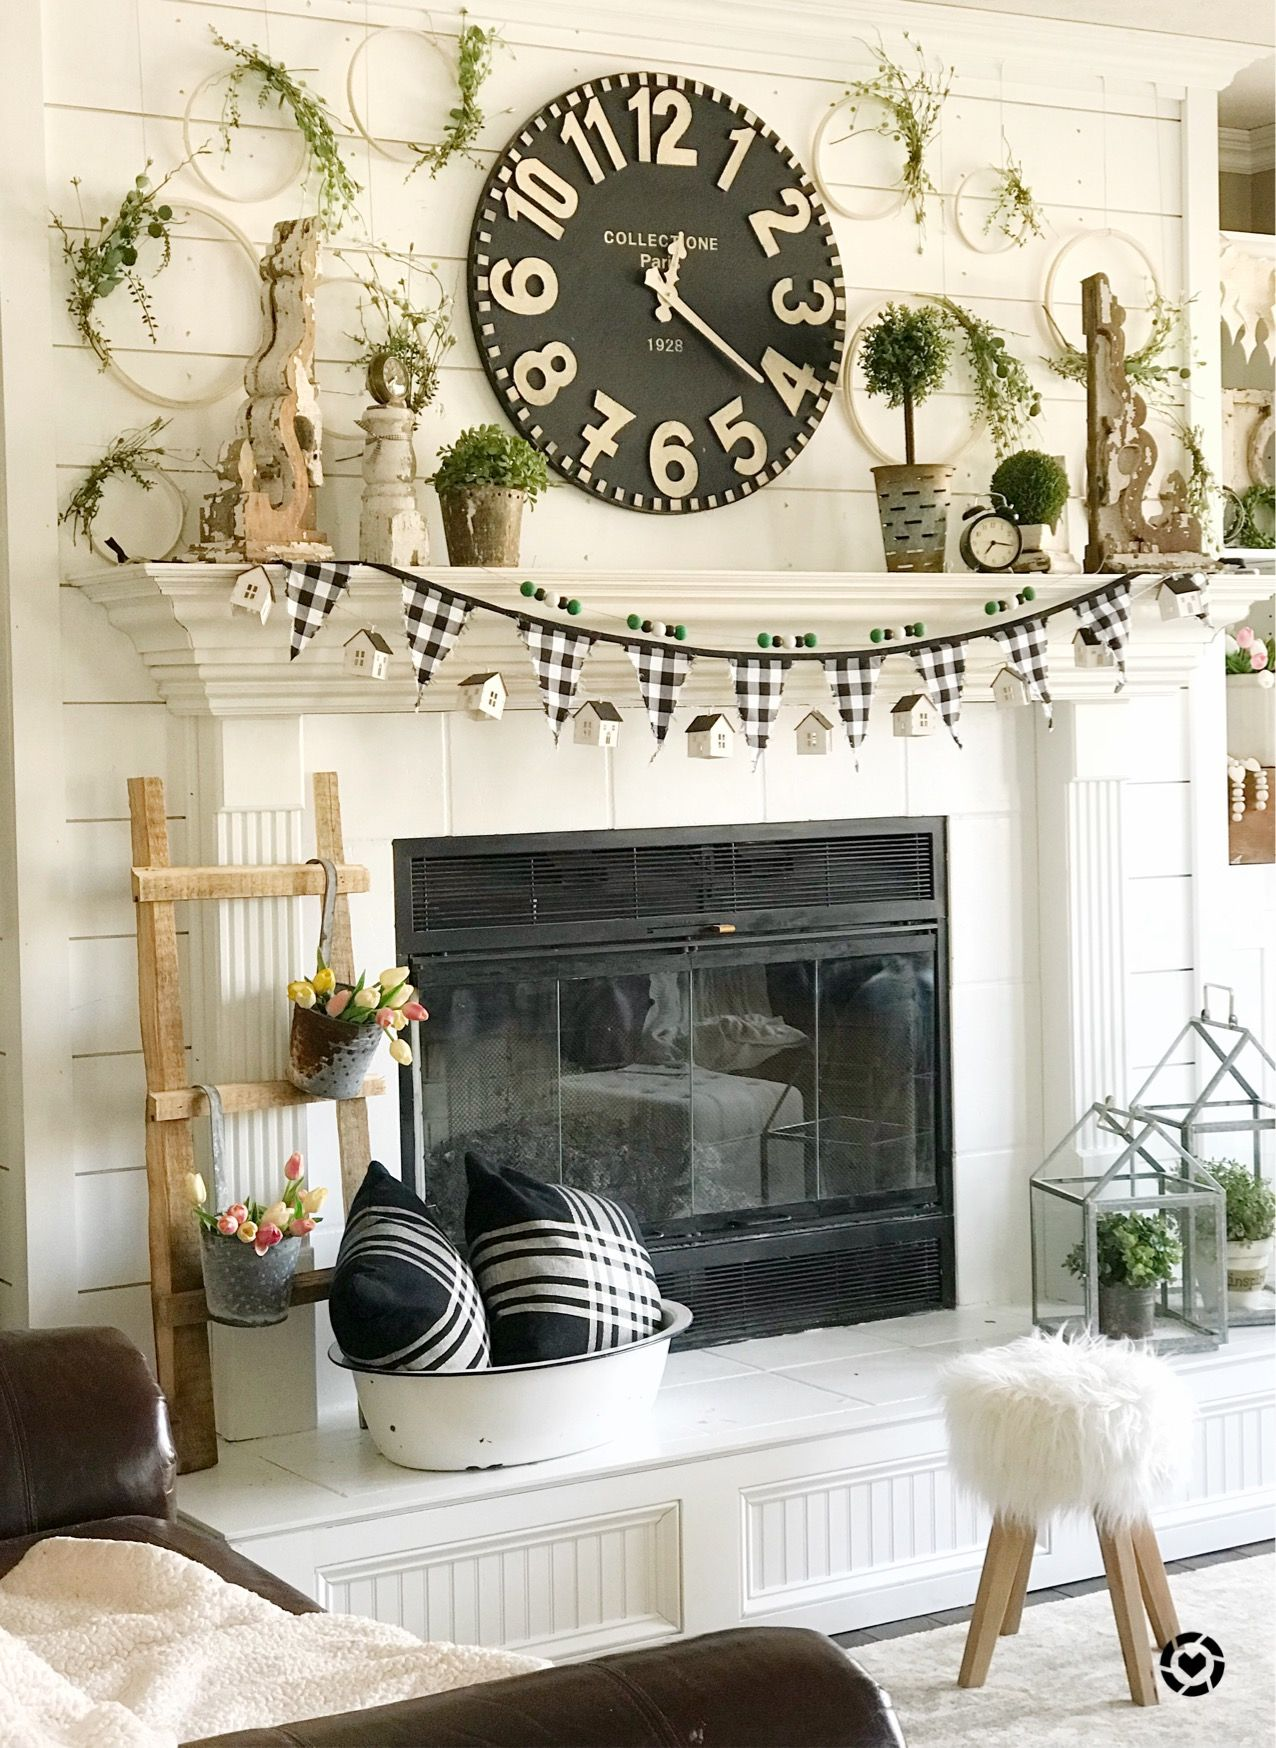 Clock Over Fireplace New Pin by Cynthia Thomas On Home Ideas and Inspiration